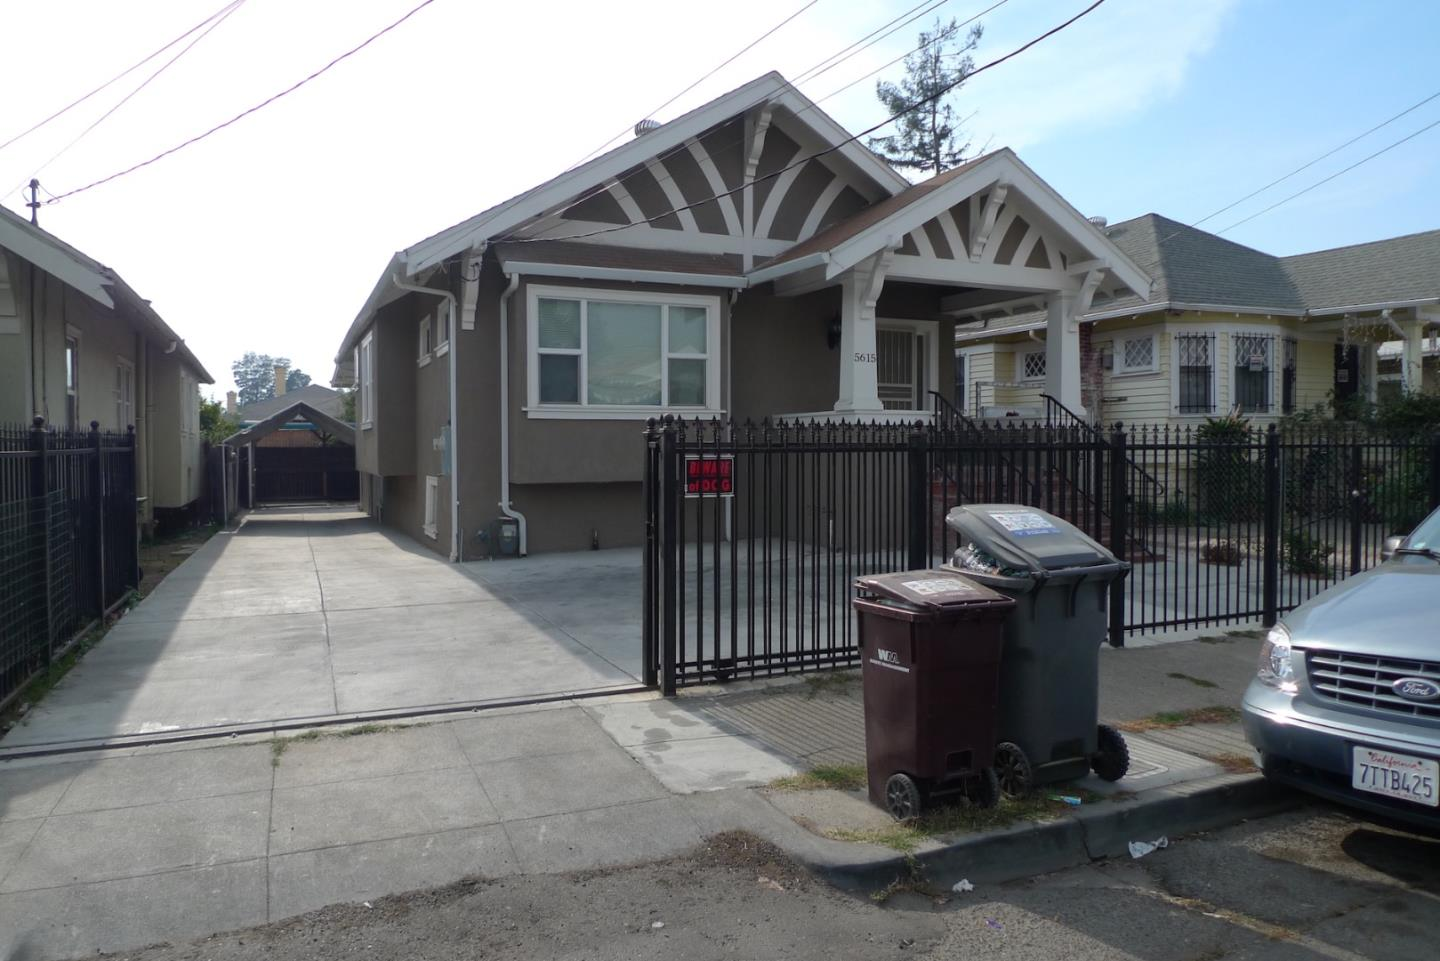 Single Family Home for Rent at 5615 E 17th Street 5615 E 17th Street Oakland, California 94621 United States